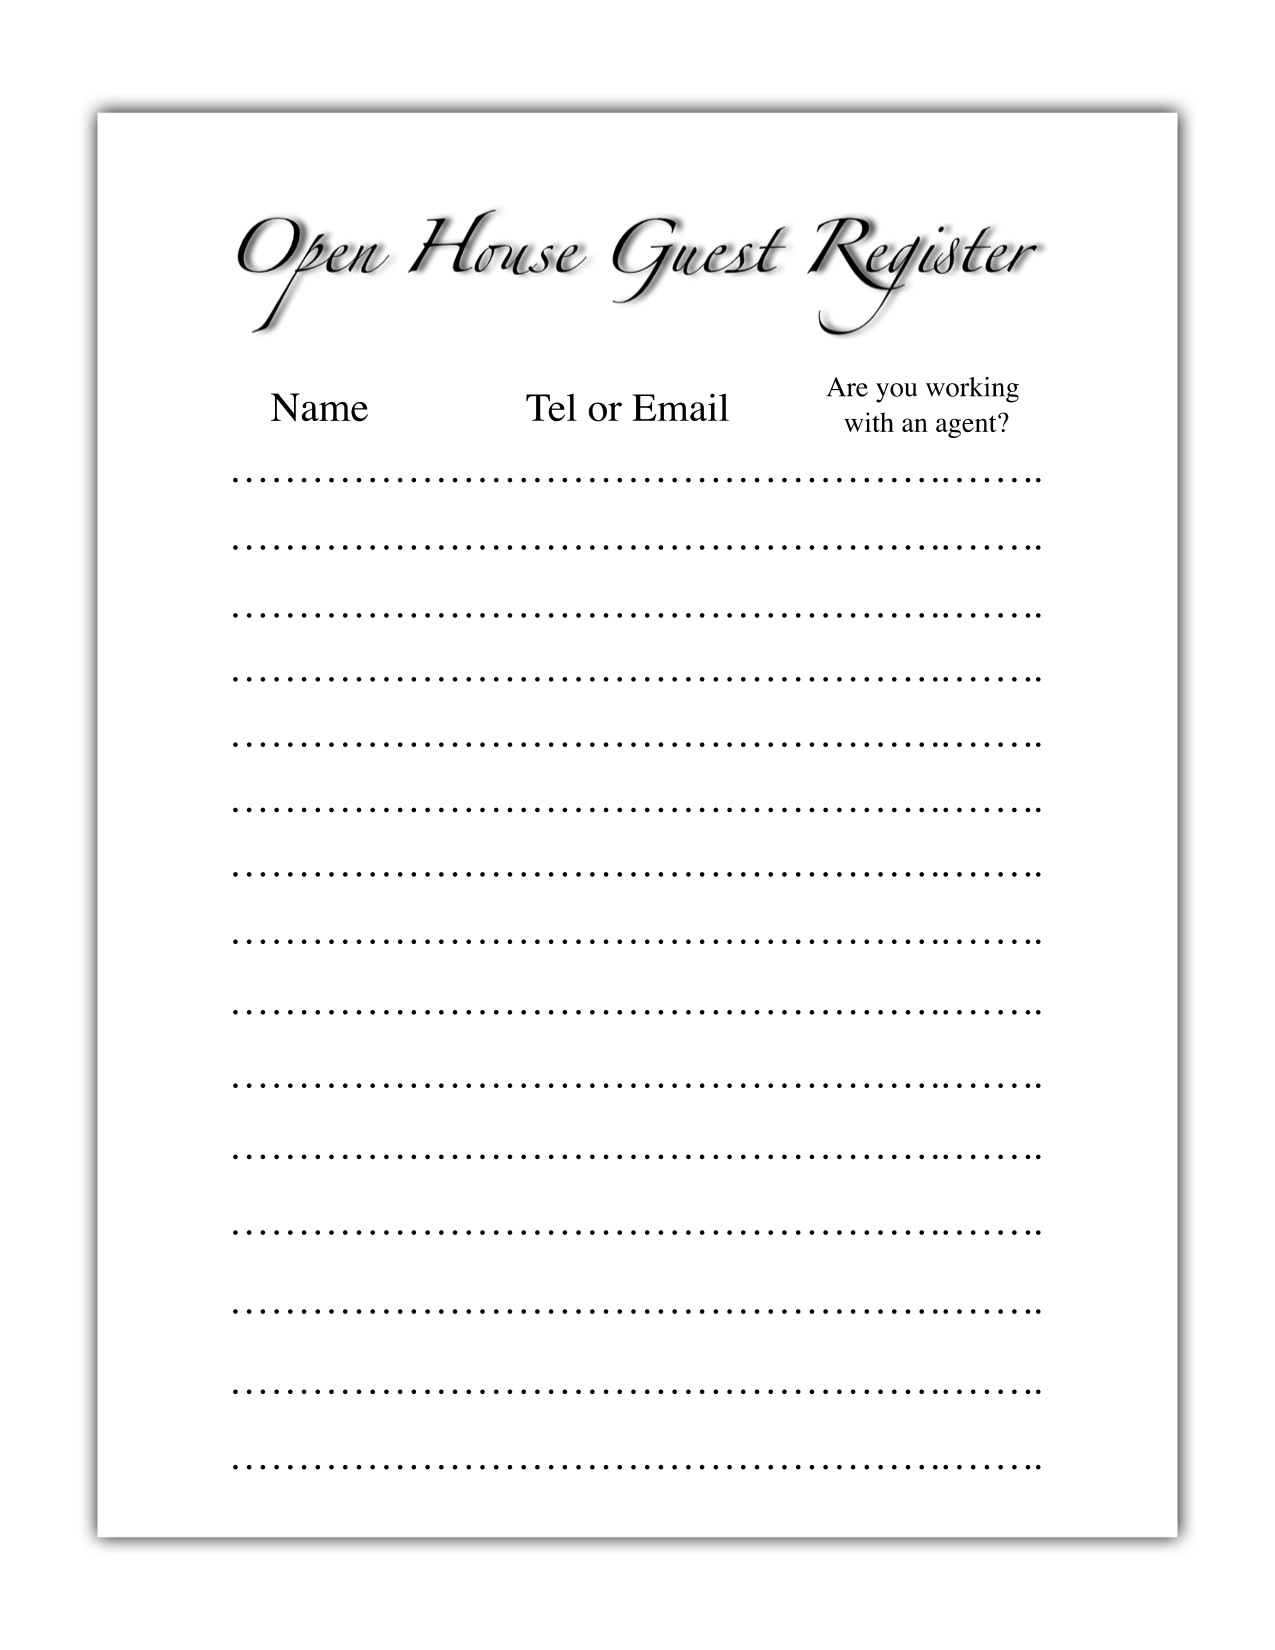 guest register a simple sign in sheet for open houses